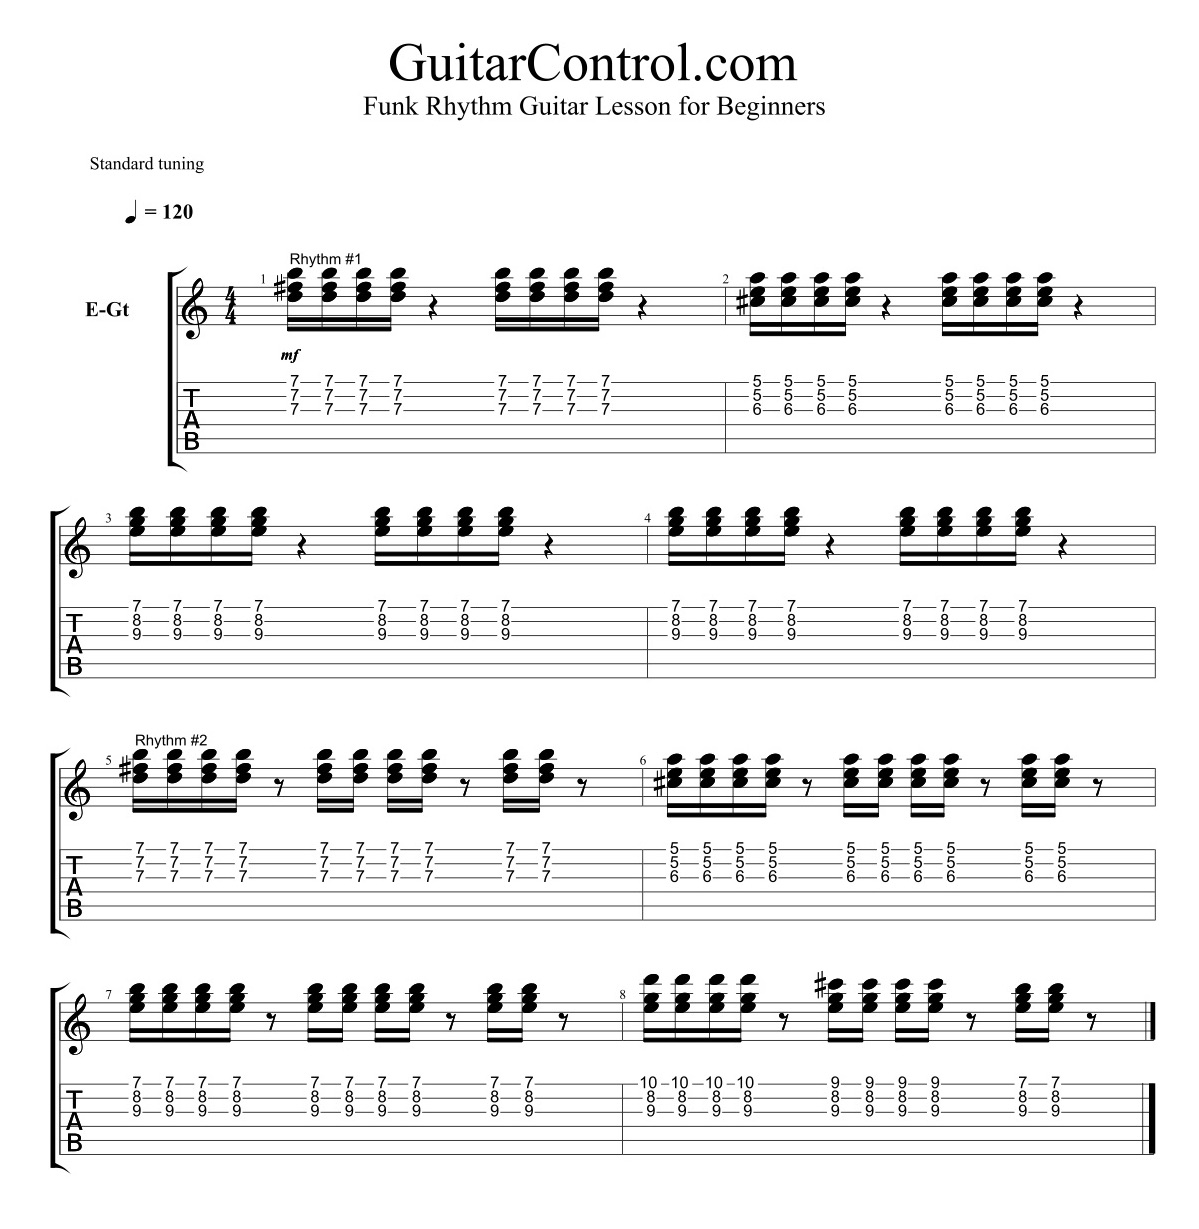 Funk Rhythm Guitar Lesson For